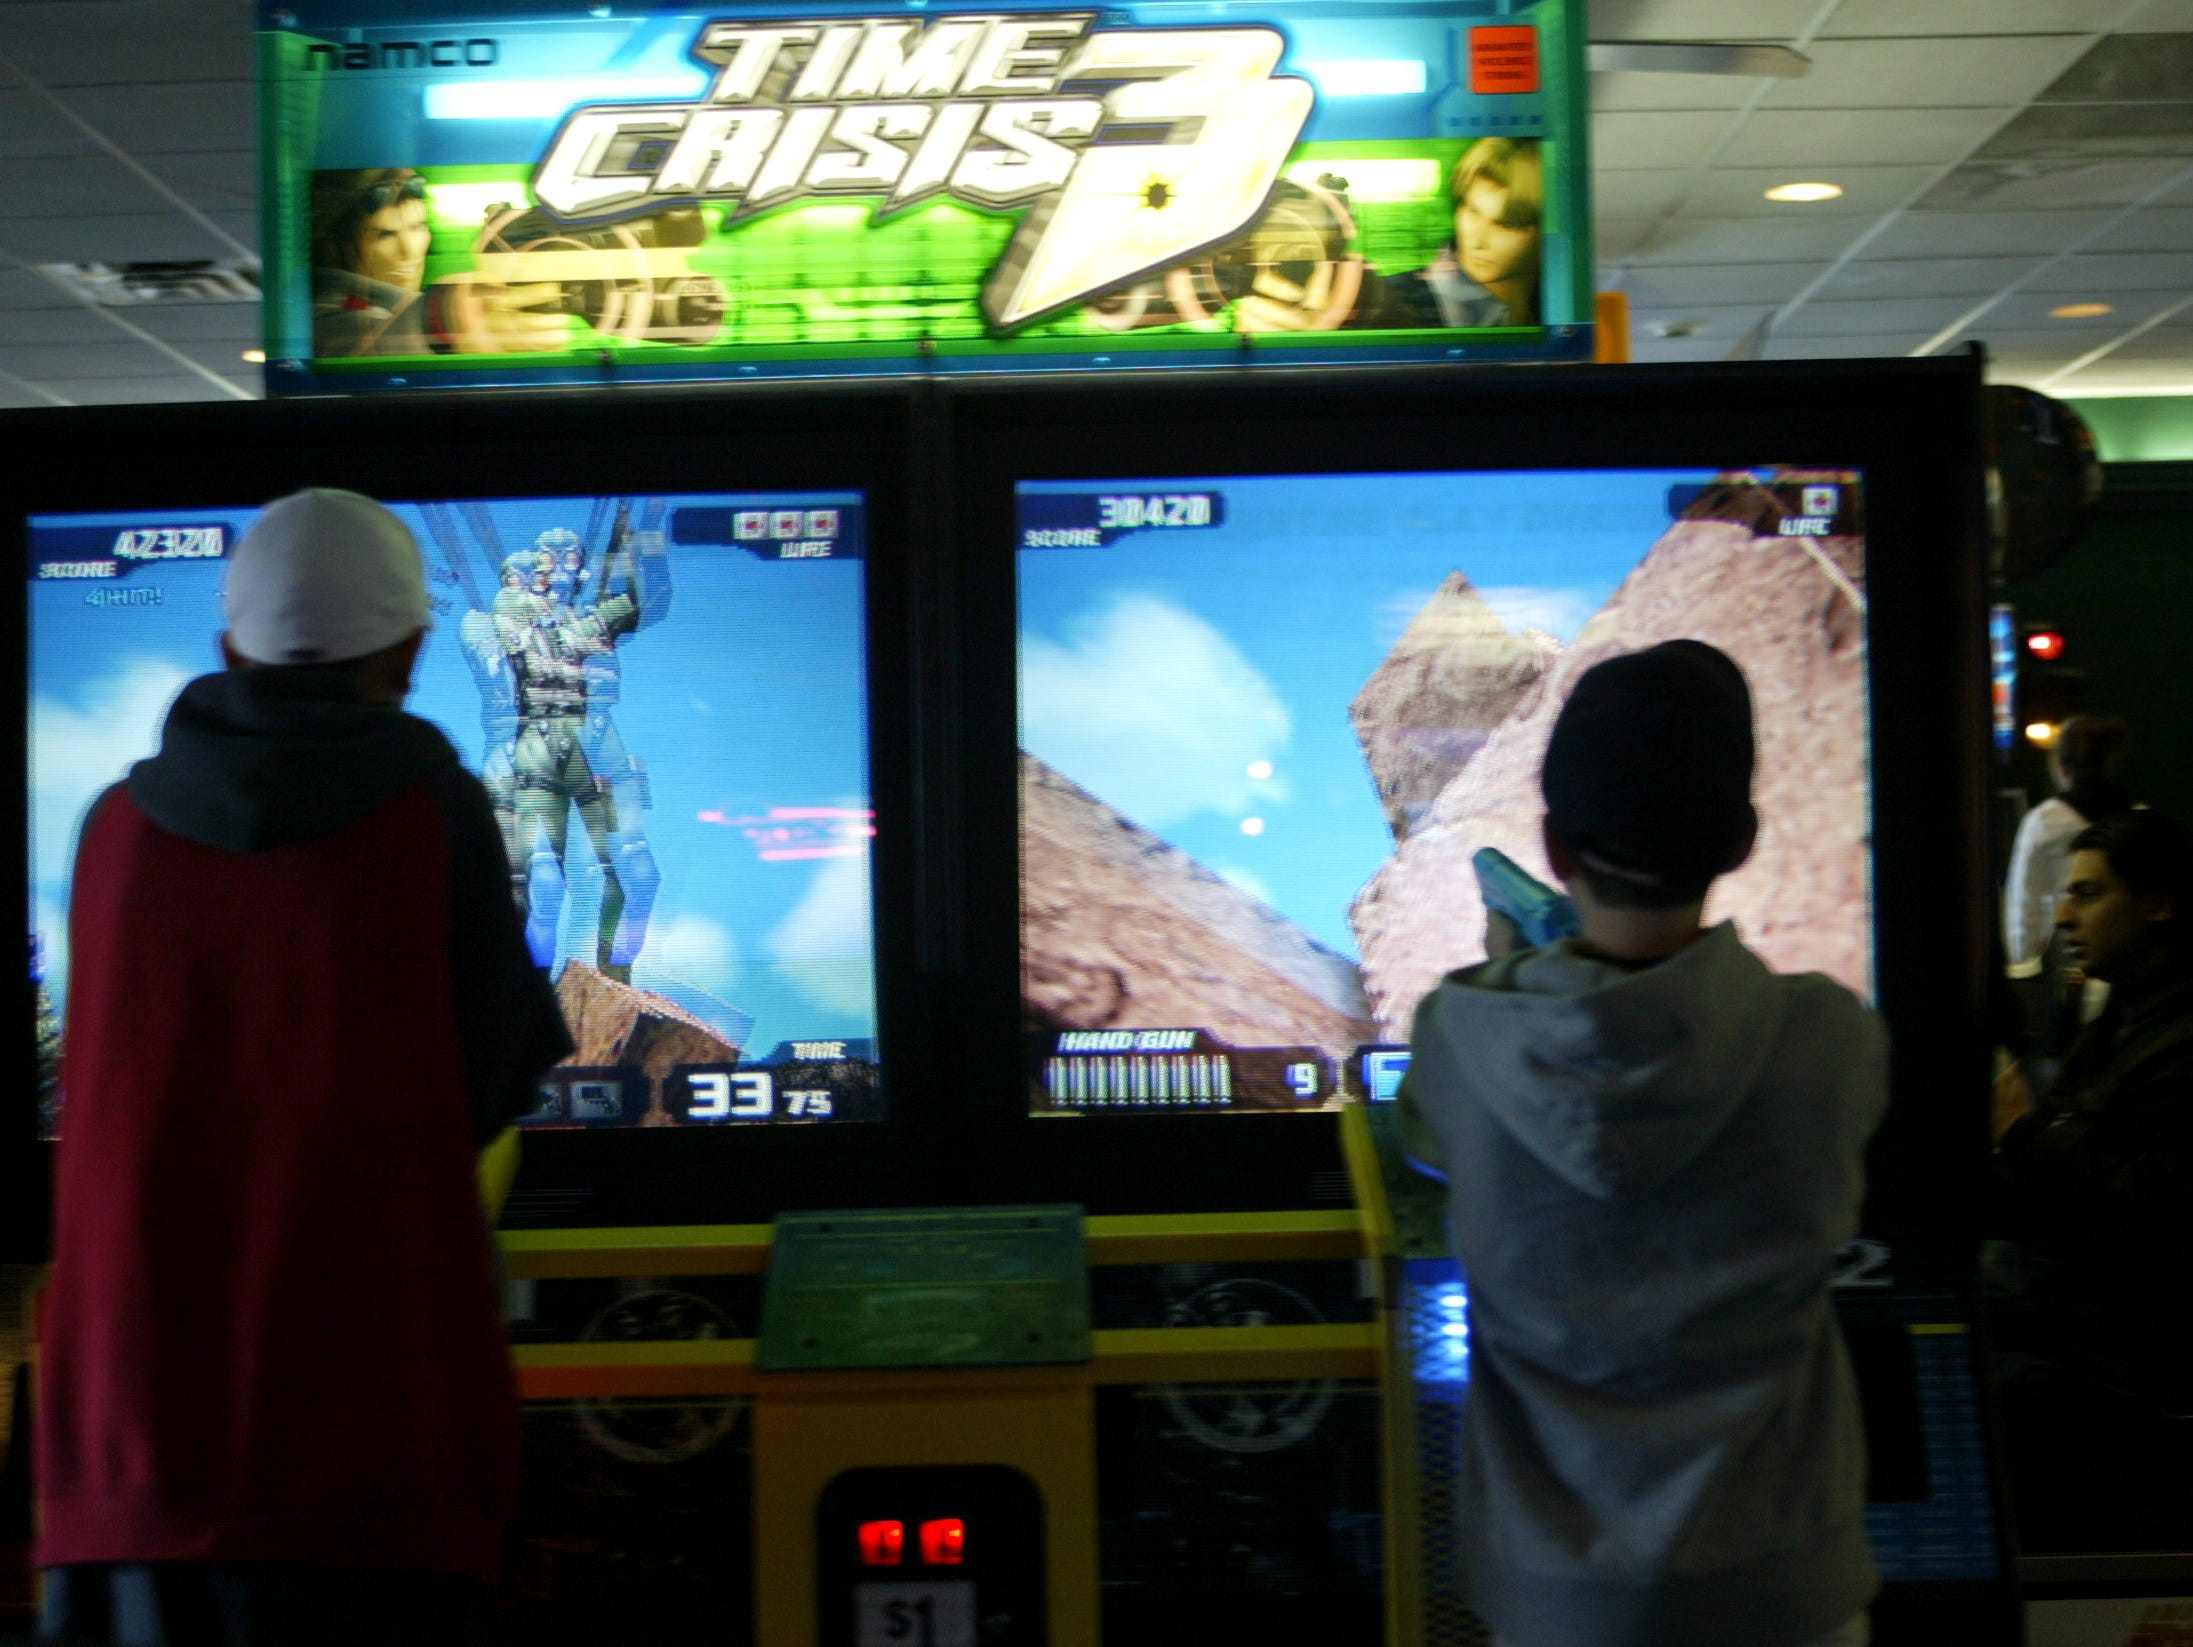 The Fun n' Games Arcade  at the Willowbrook Mall.  Players at Time Crisis 3 on December 20, 2003.